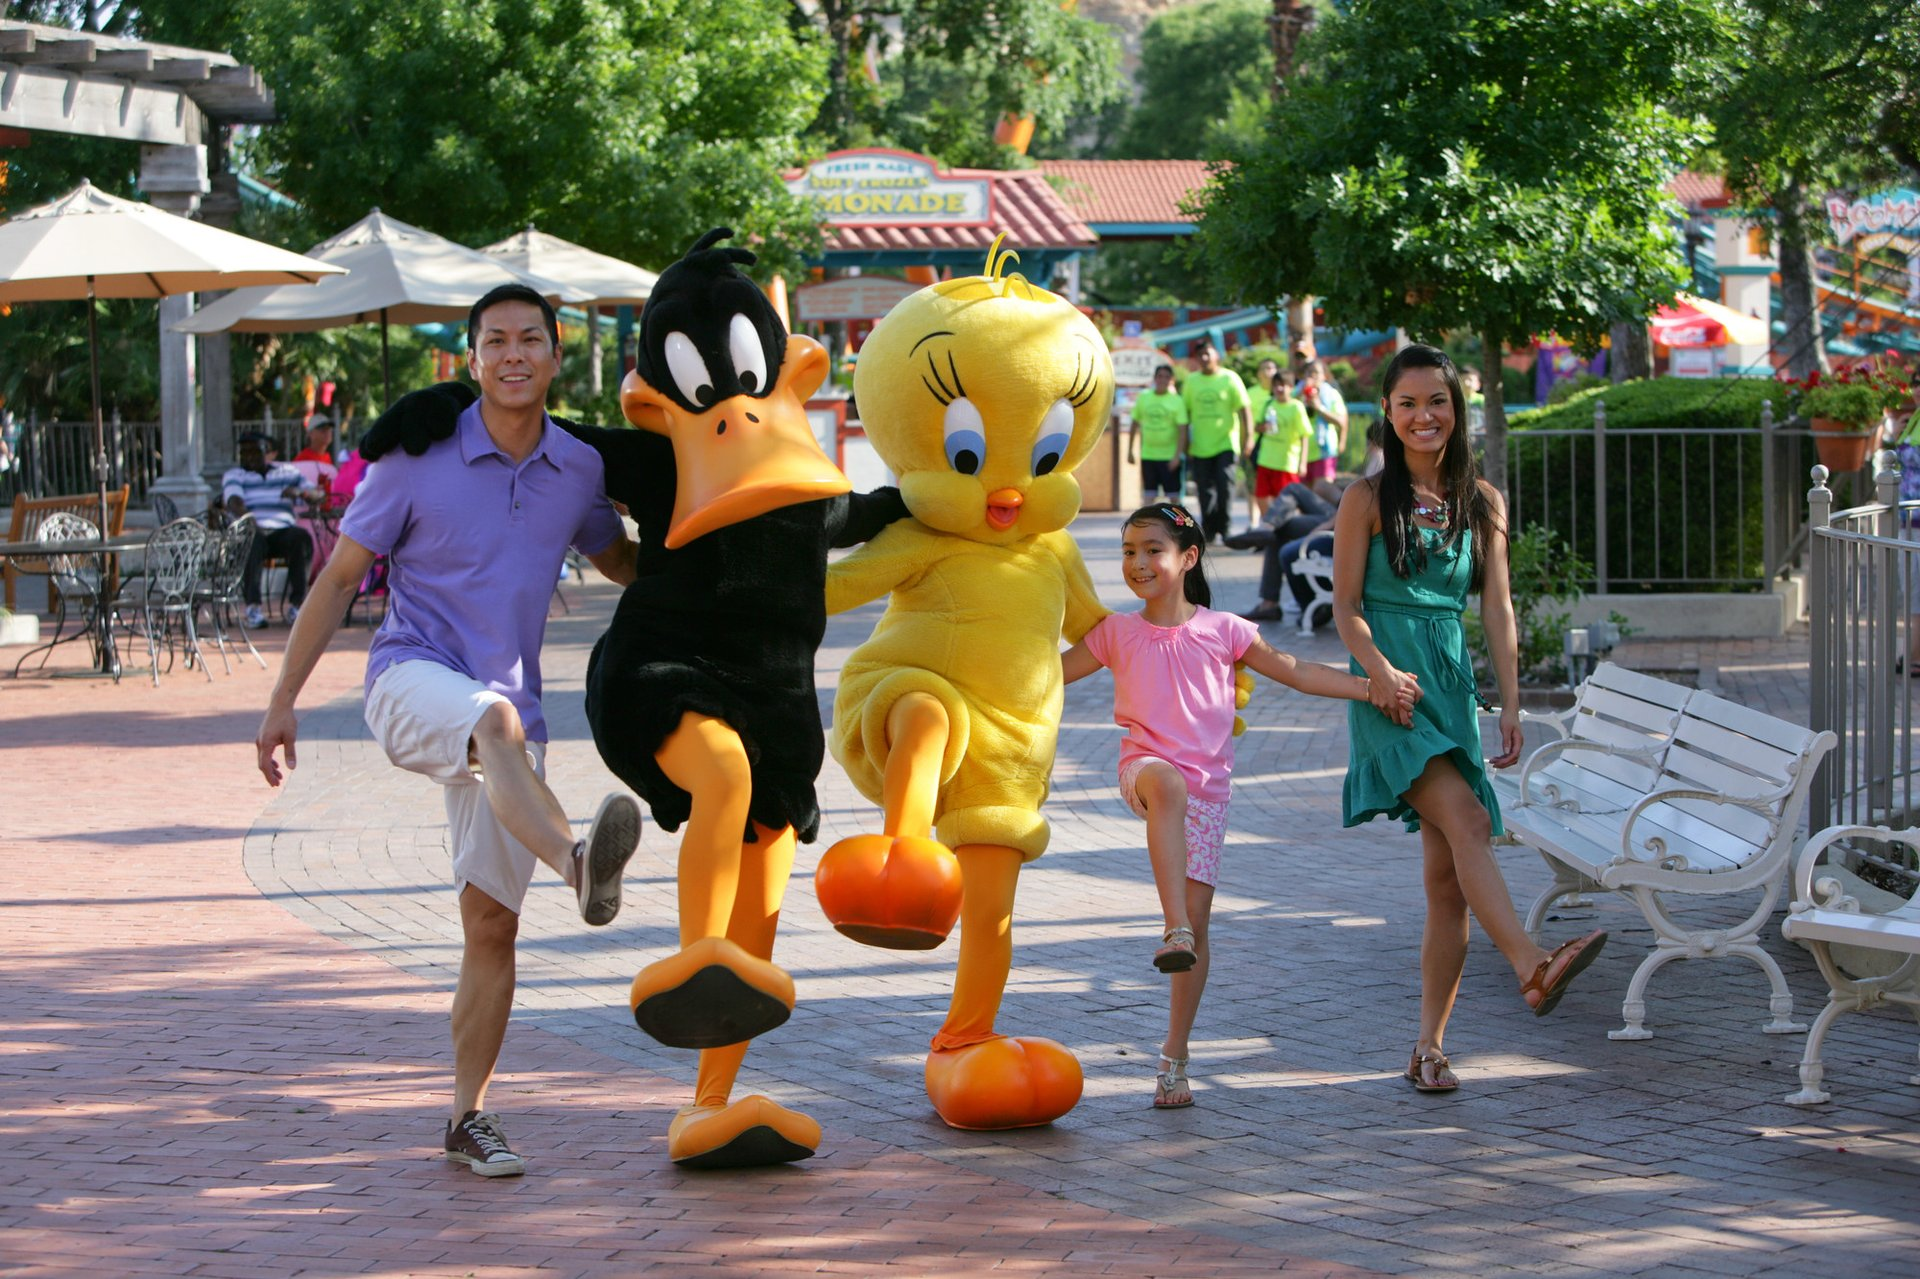 A family walking with characters at Six Flags theme park